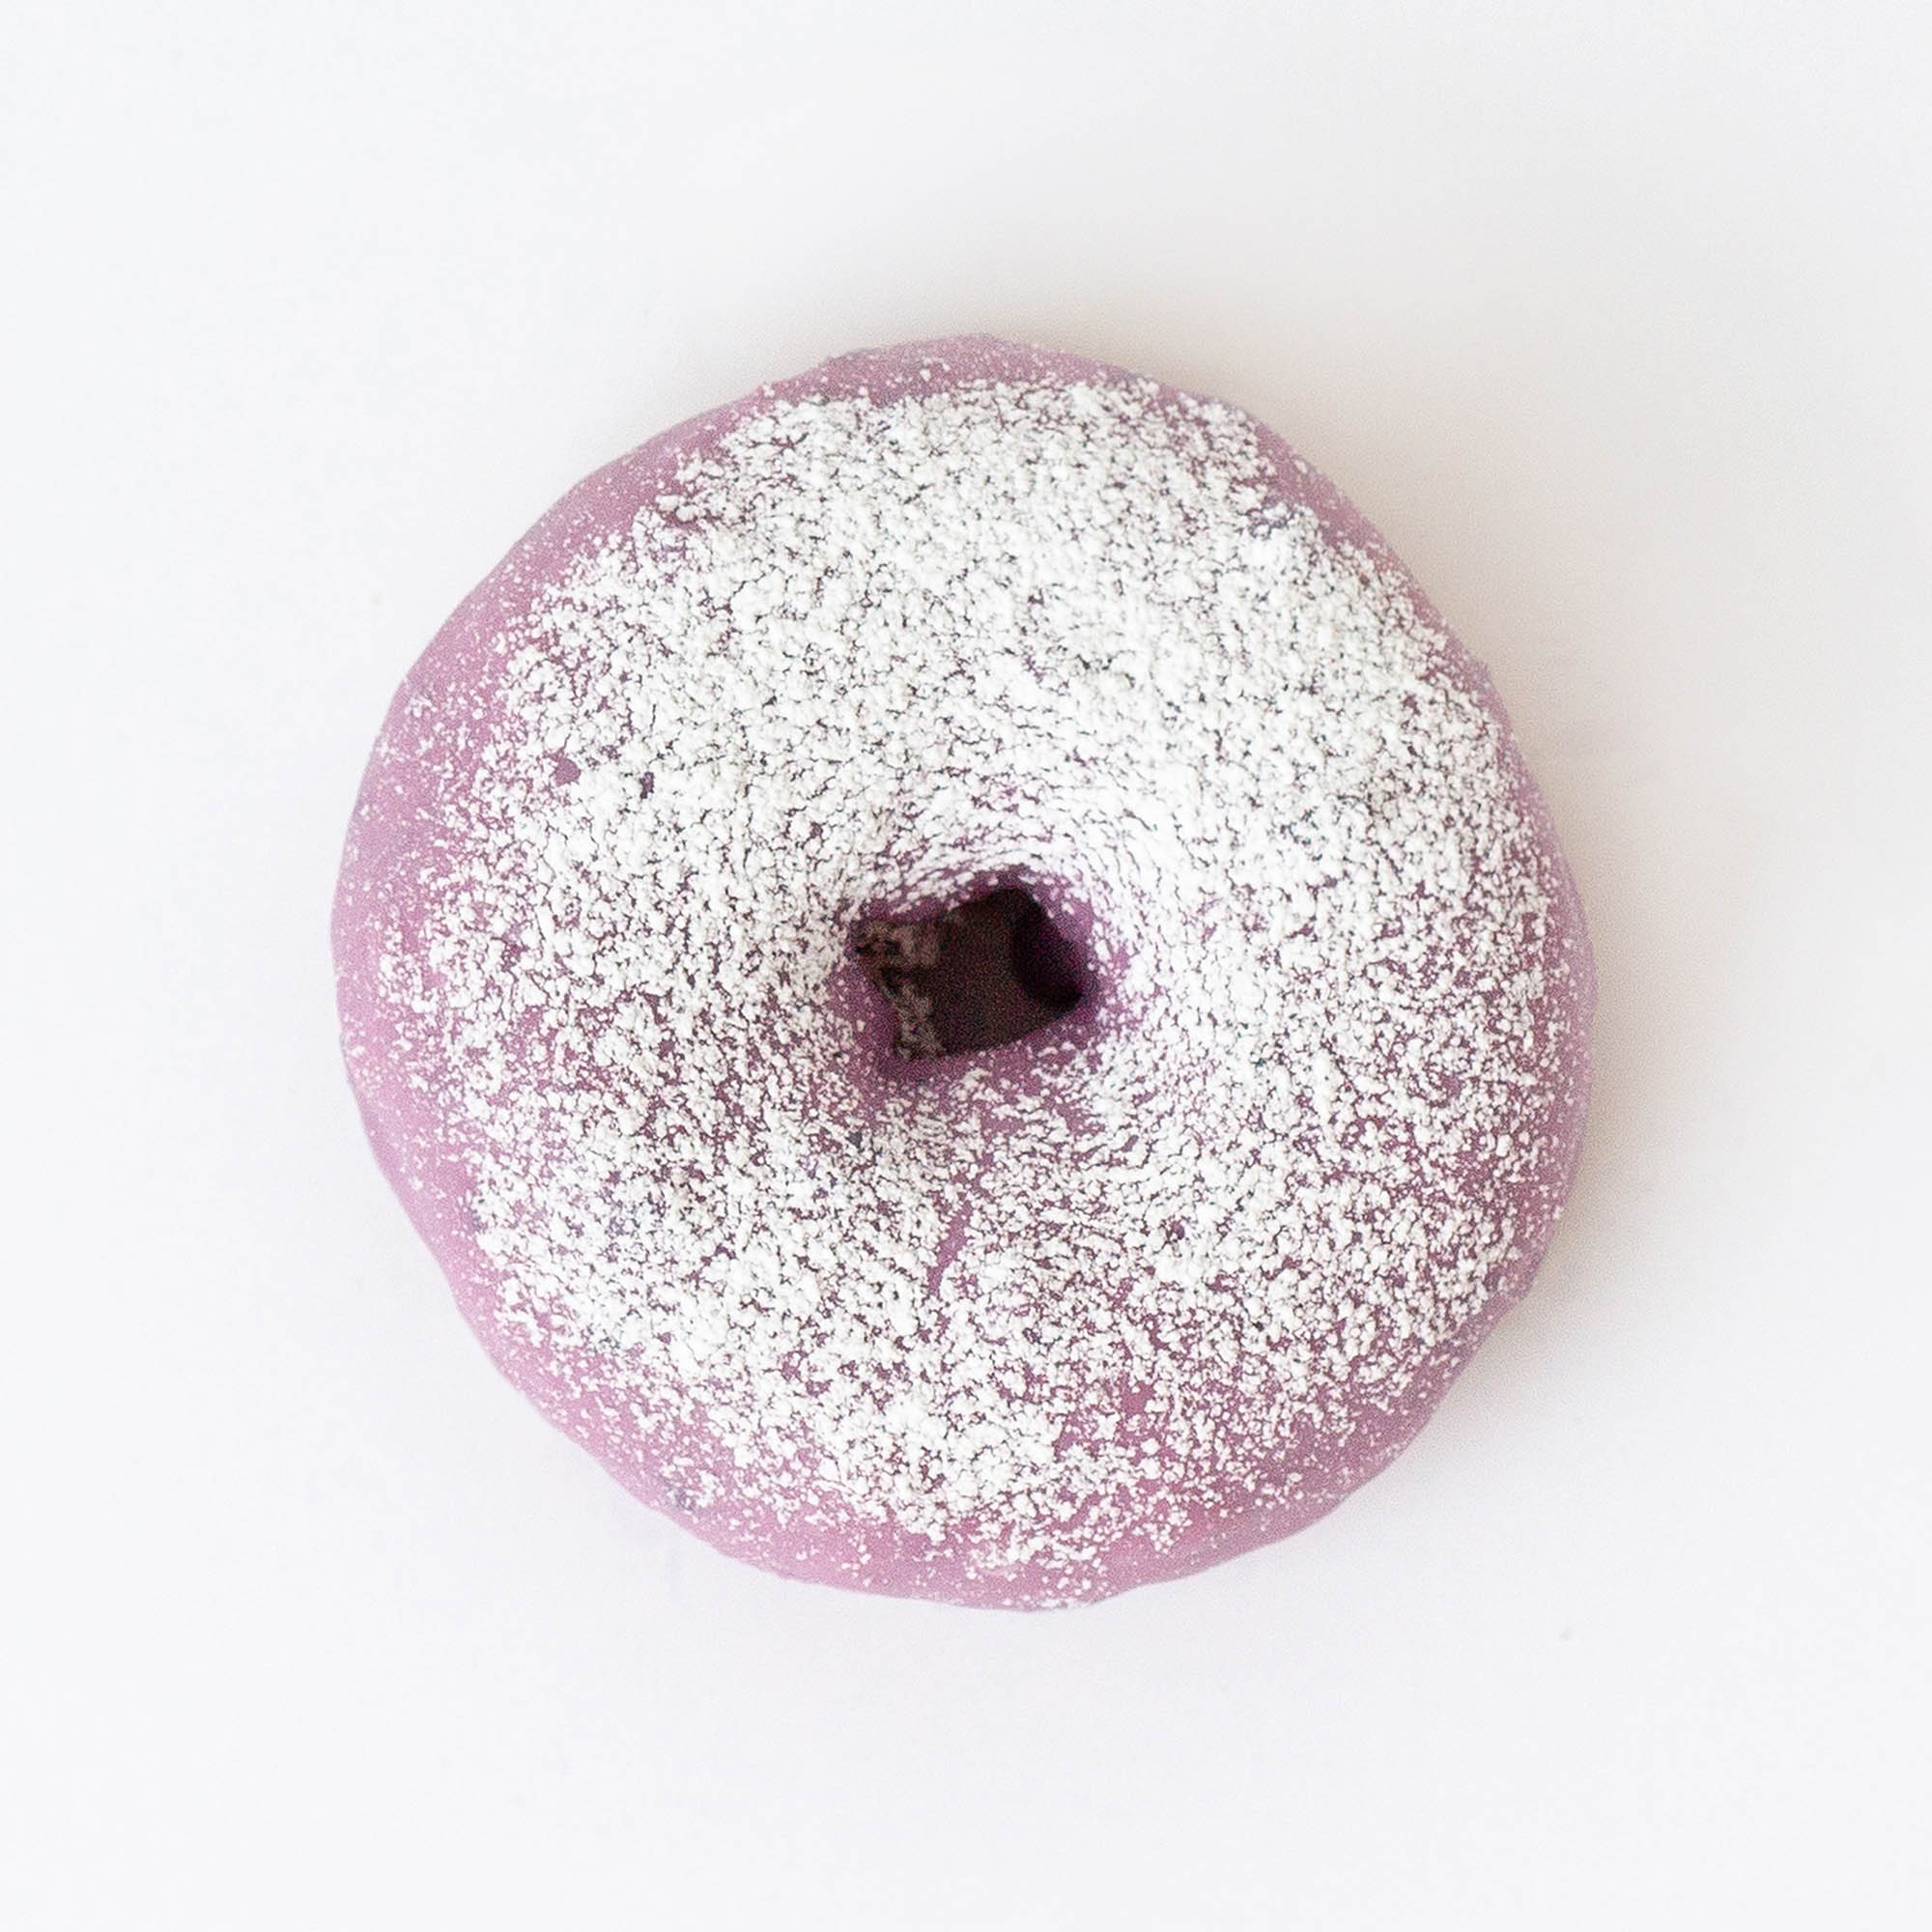 The Jack Dusty - blueberry icing, powdered sugar